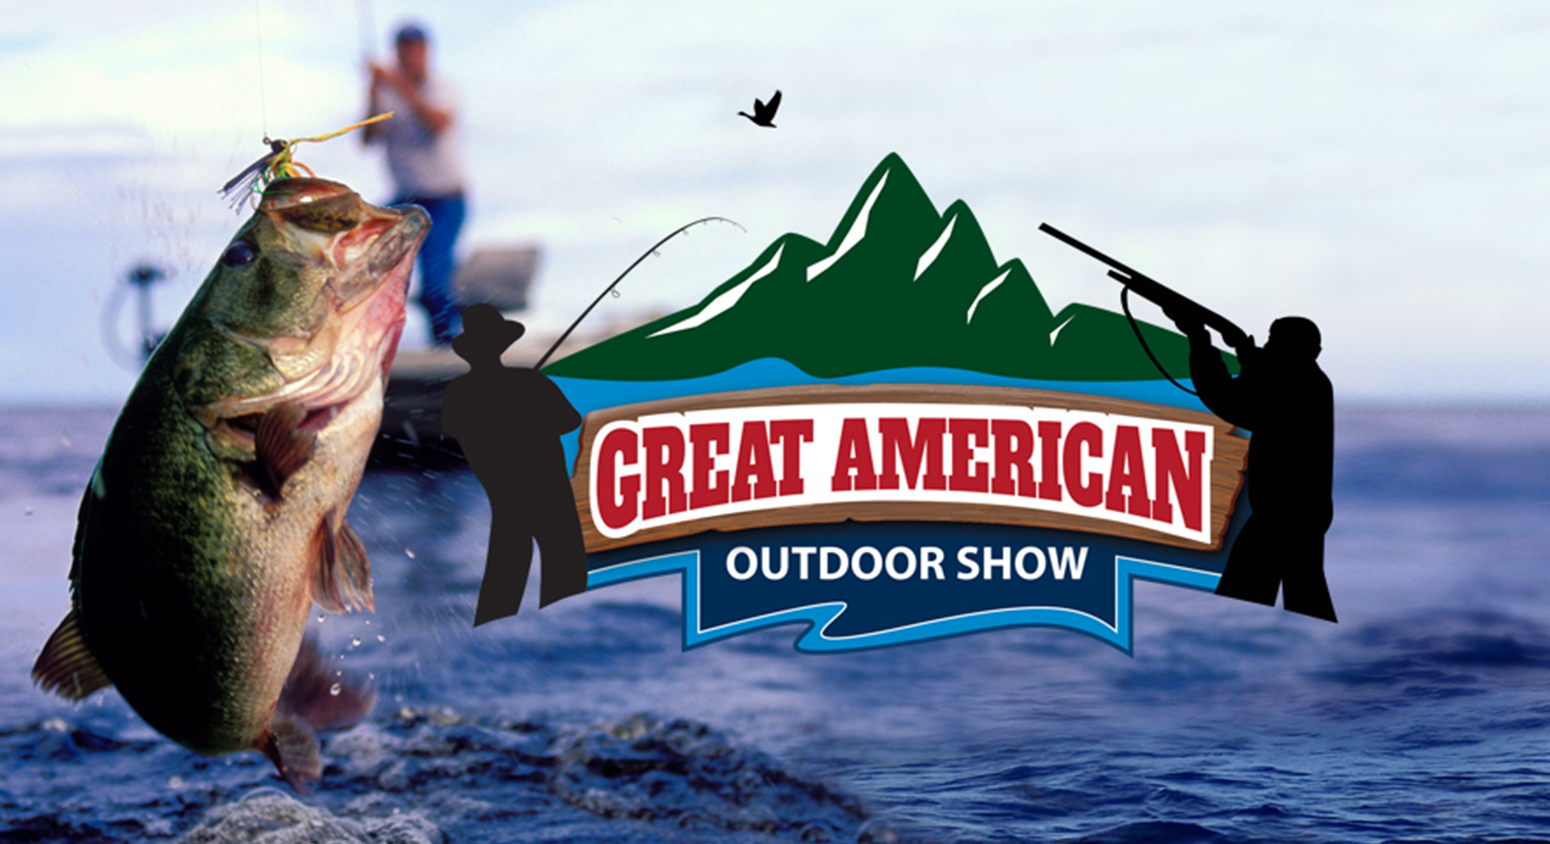 Great American Outdoor Show Events for Sunday February 14